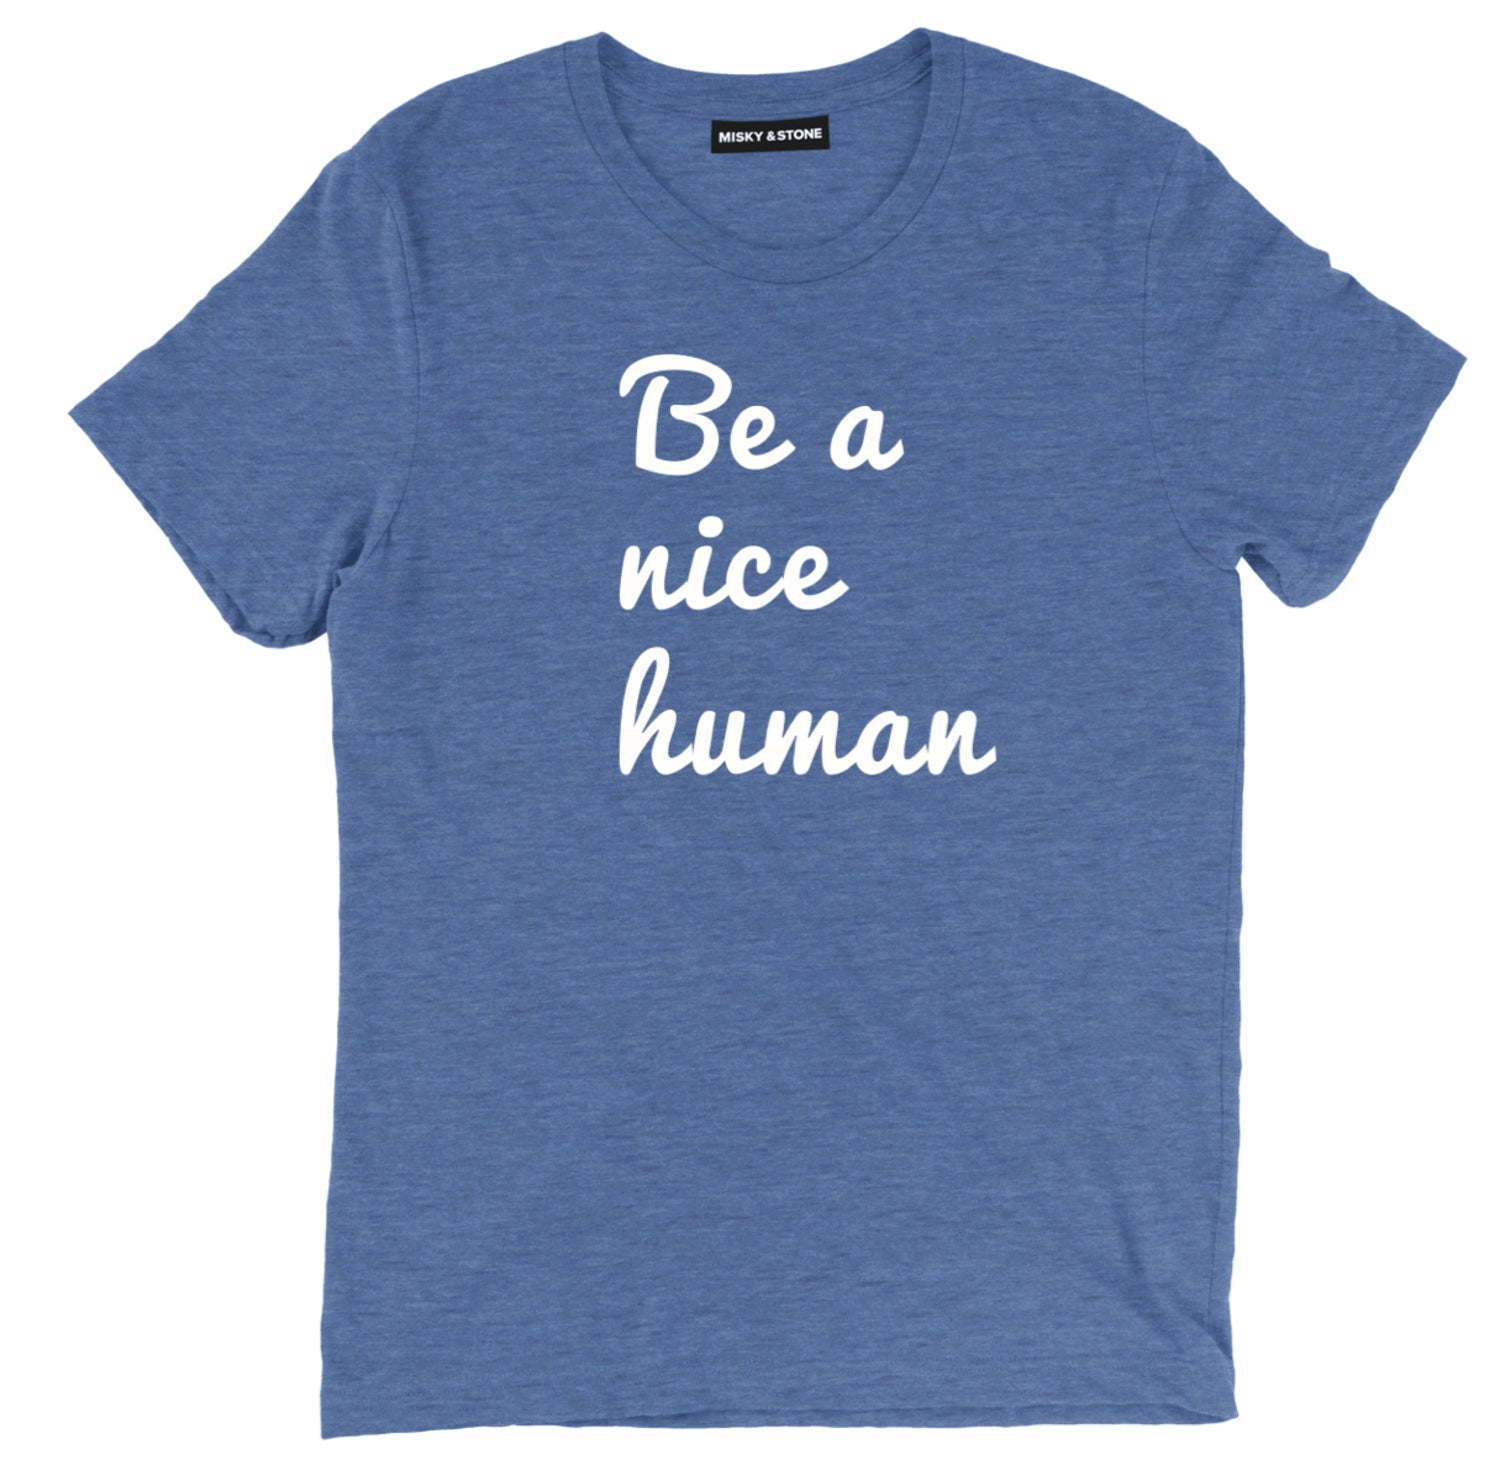 Be a Nice Human good vibes tee shirt, Be a Nice Human good vibes apparel, good vibes merch, good vibes clothing, positive vibes tee shirt, positive vibes apparel, positive vibes merch, positive vibes clothing